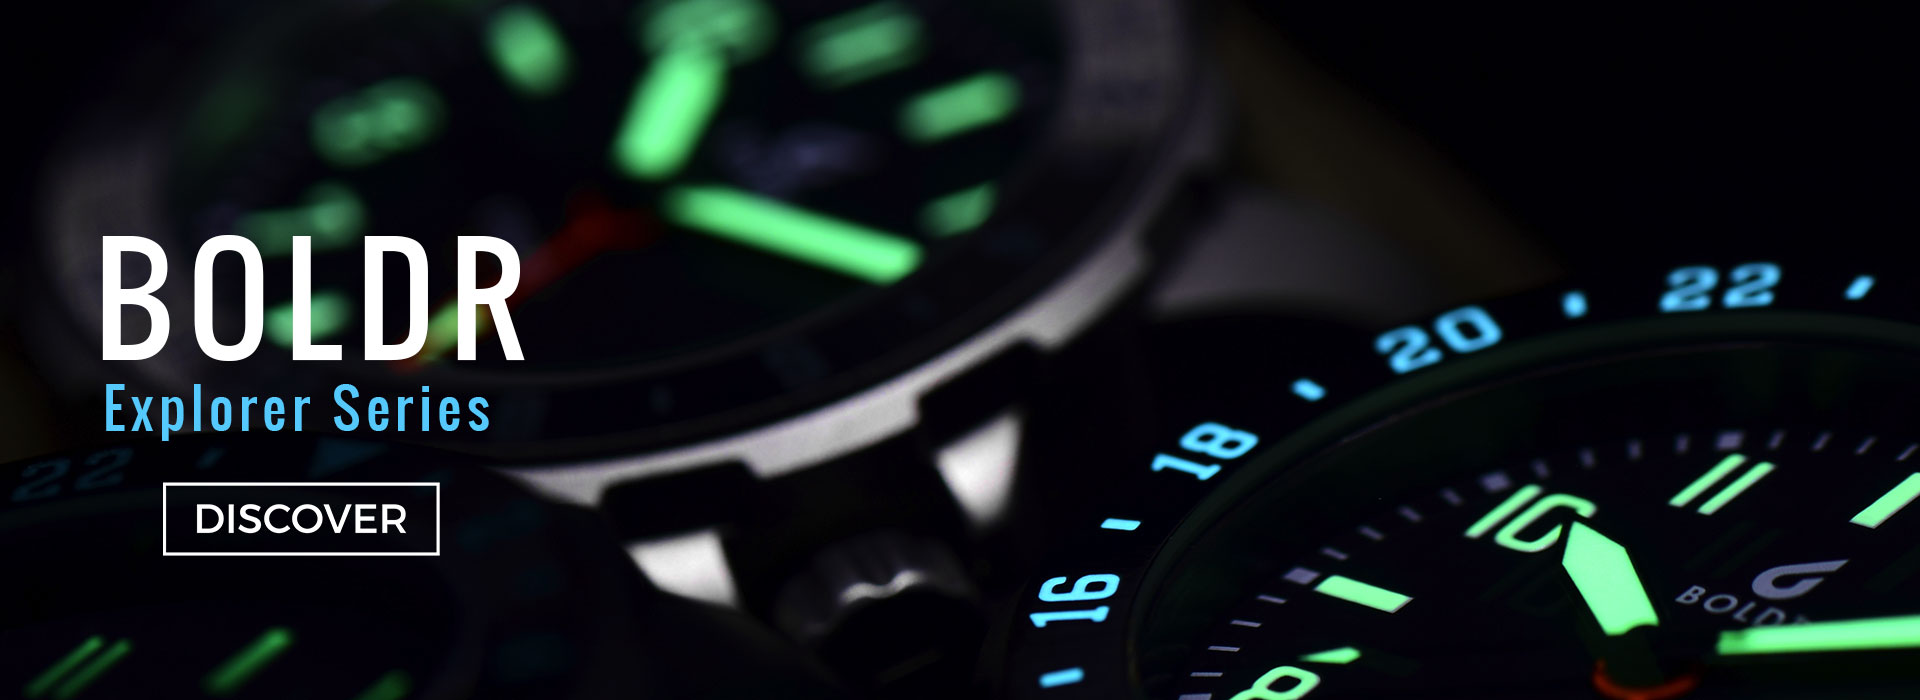 boldr watches